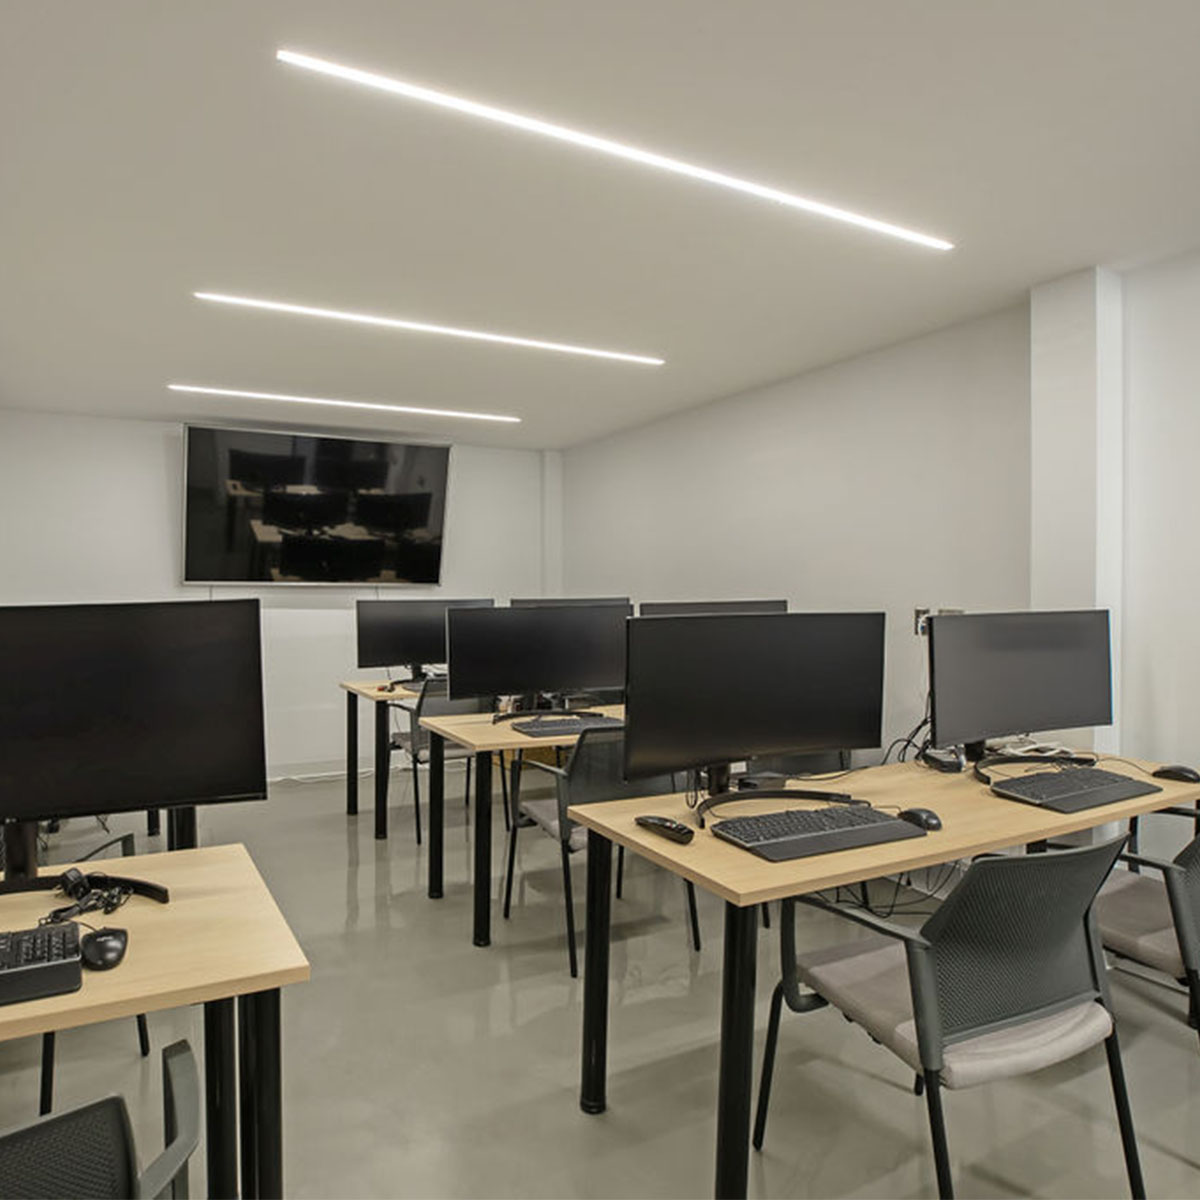 Training room and collaborative spaces